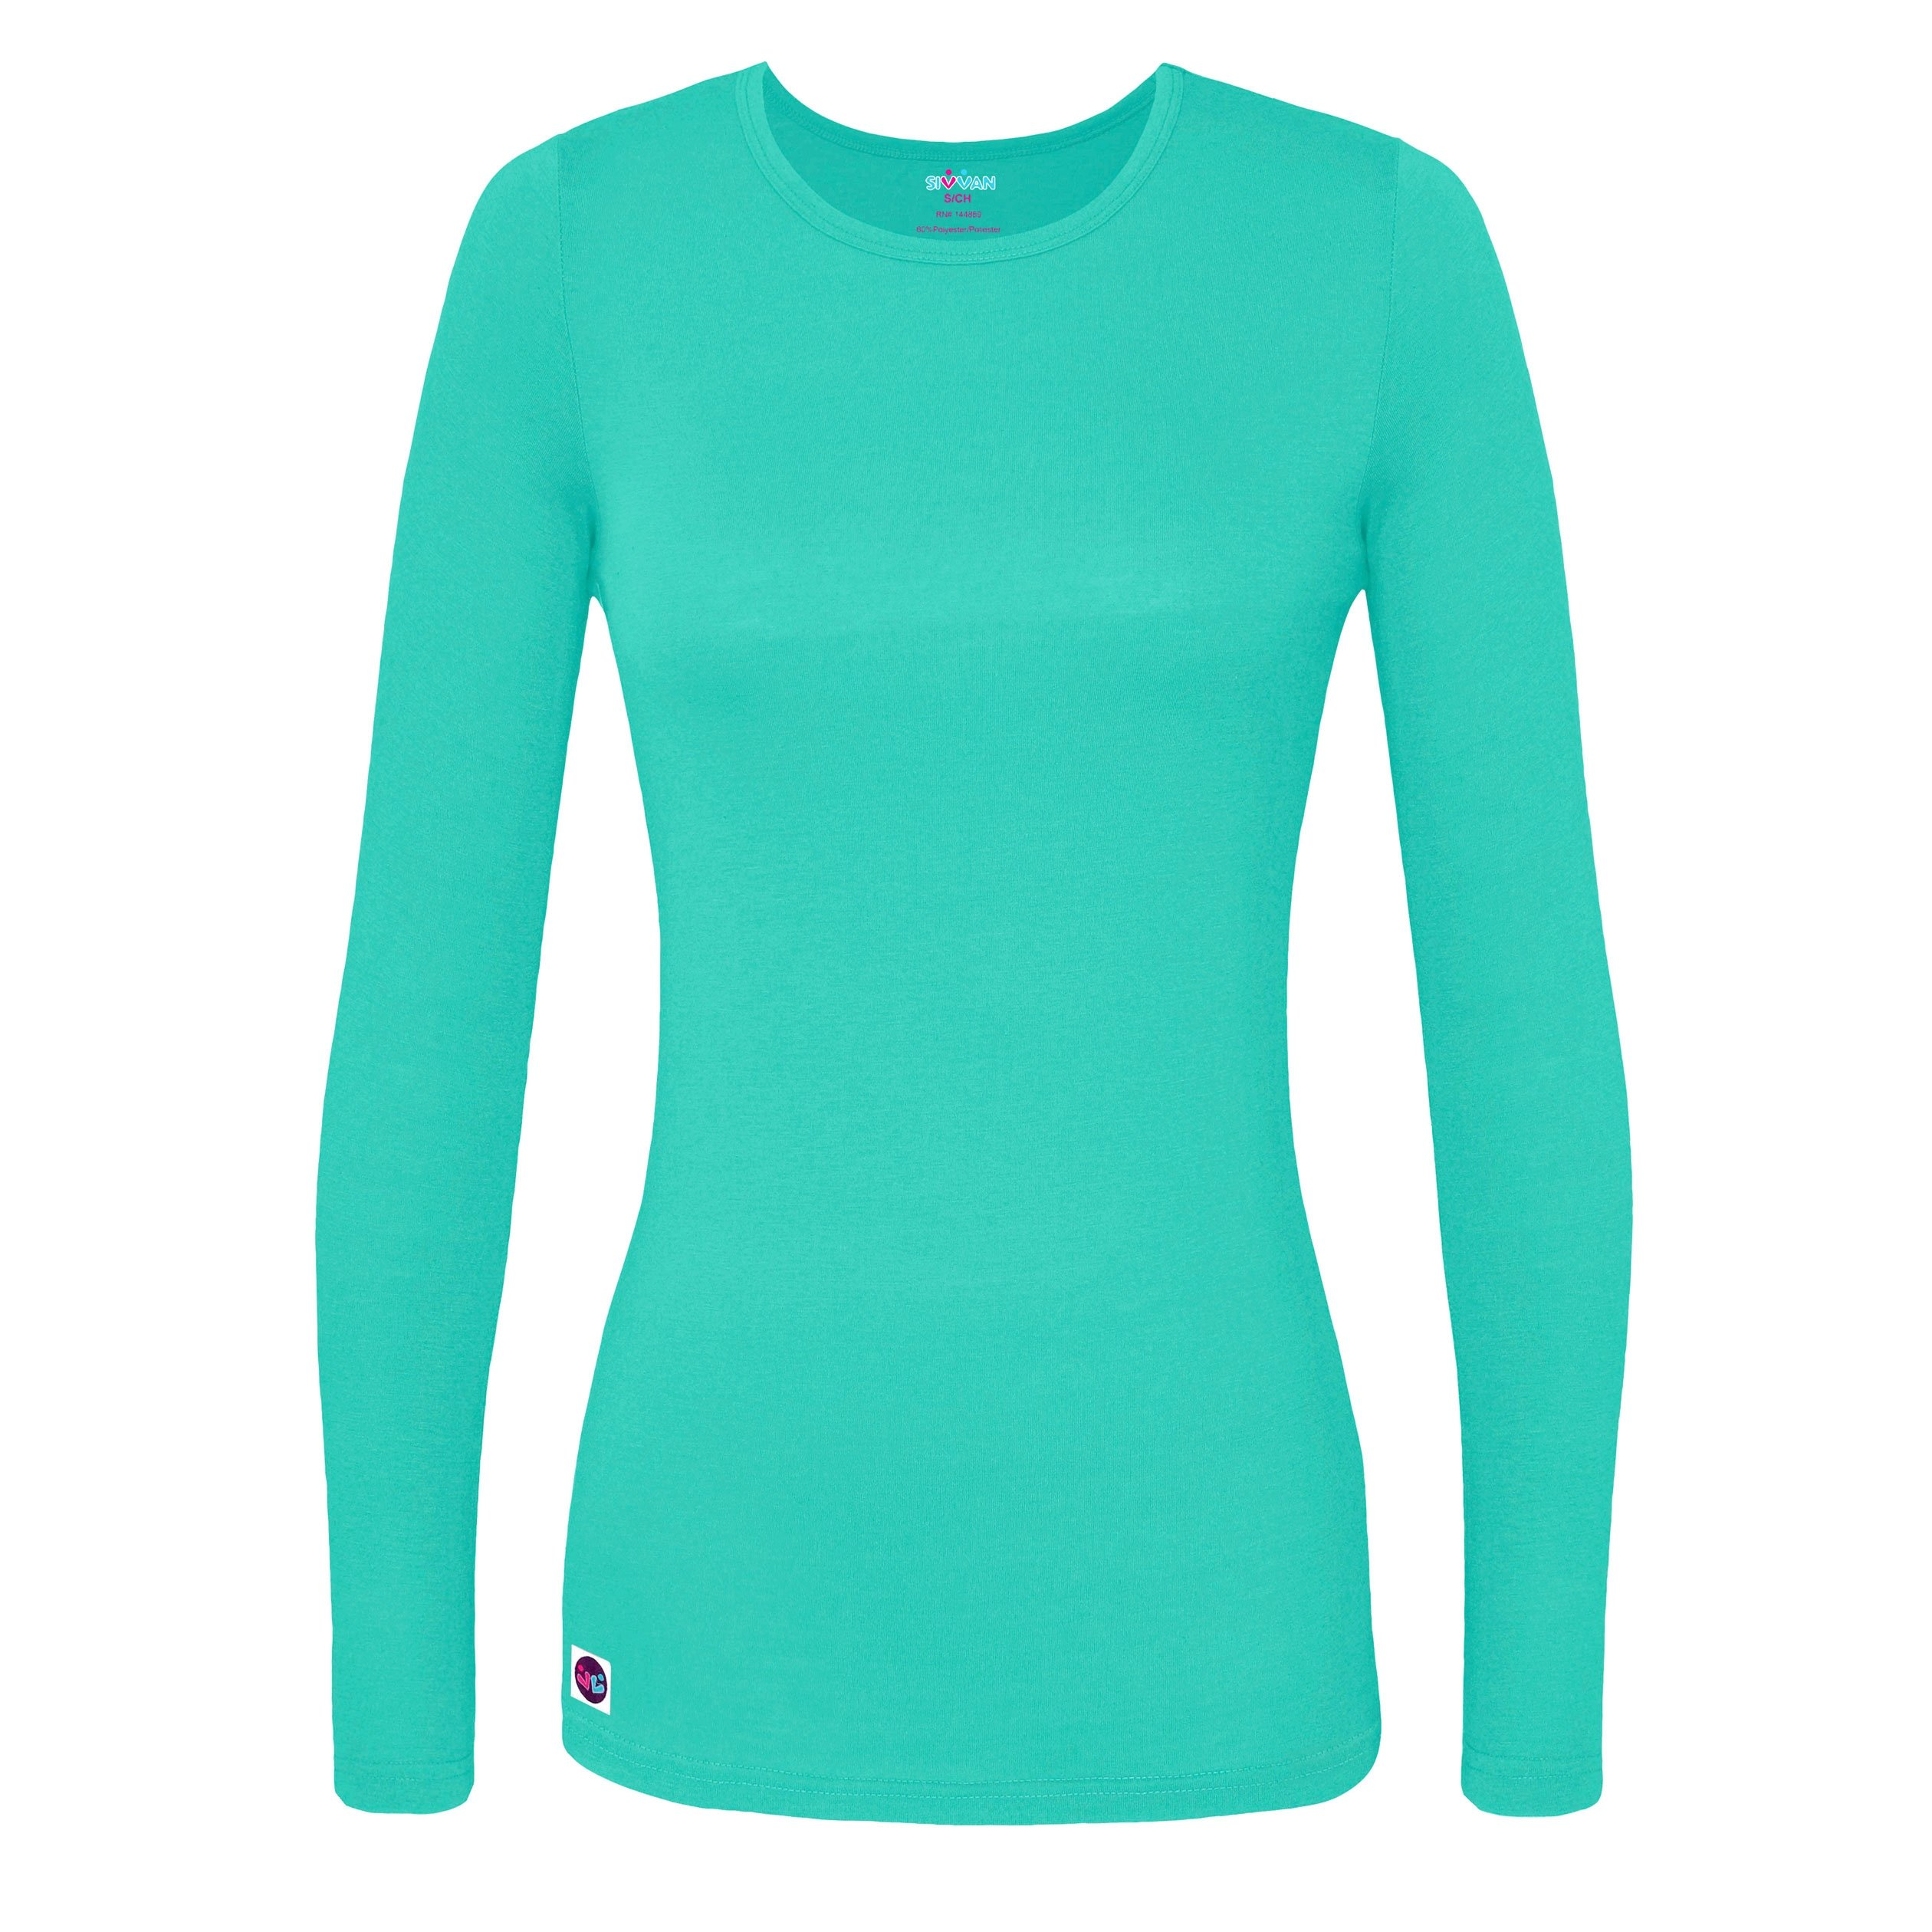 Long Sleeve T-shirts. Comfort Colors % Cotton Long Sleeve Shirt; Comfort Colors % Cotton Long Sleeve Shirt. (1,) Read Reviews. White Select Color Soft and comfortable fabric Dyed with eco-friendly pigment colors; each shirt will vary slightly in color/5(1K).